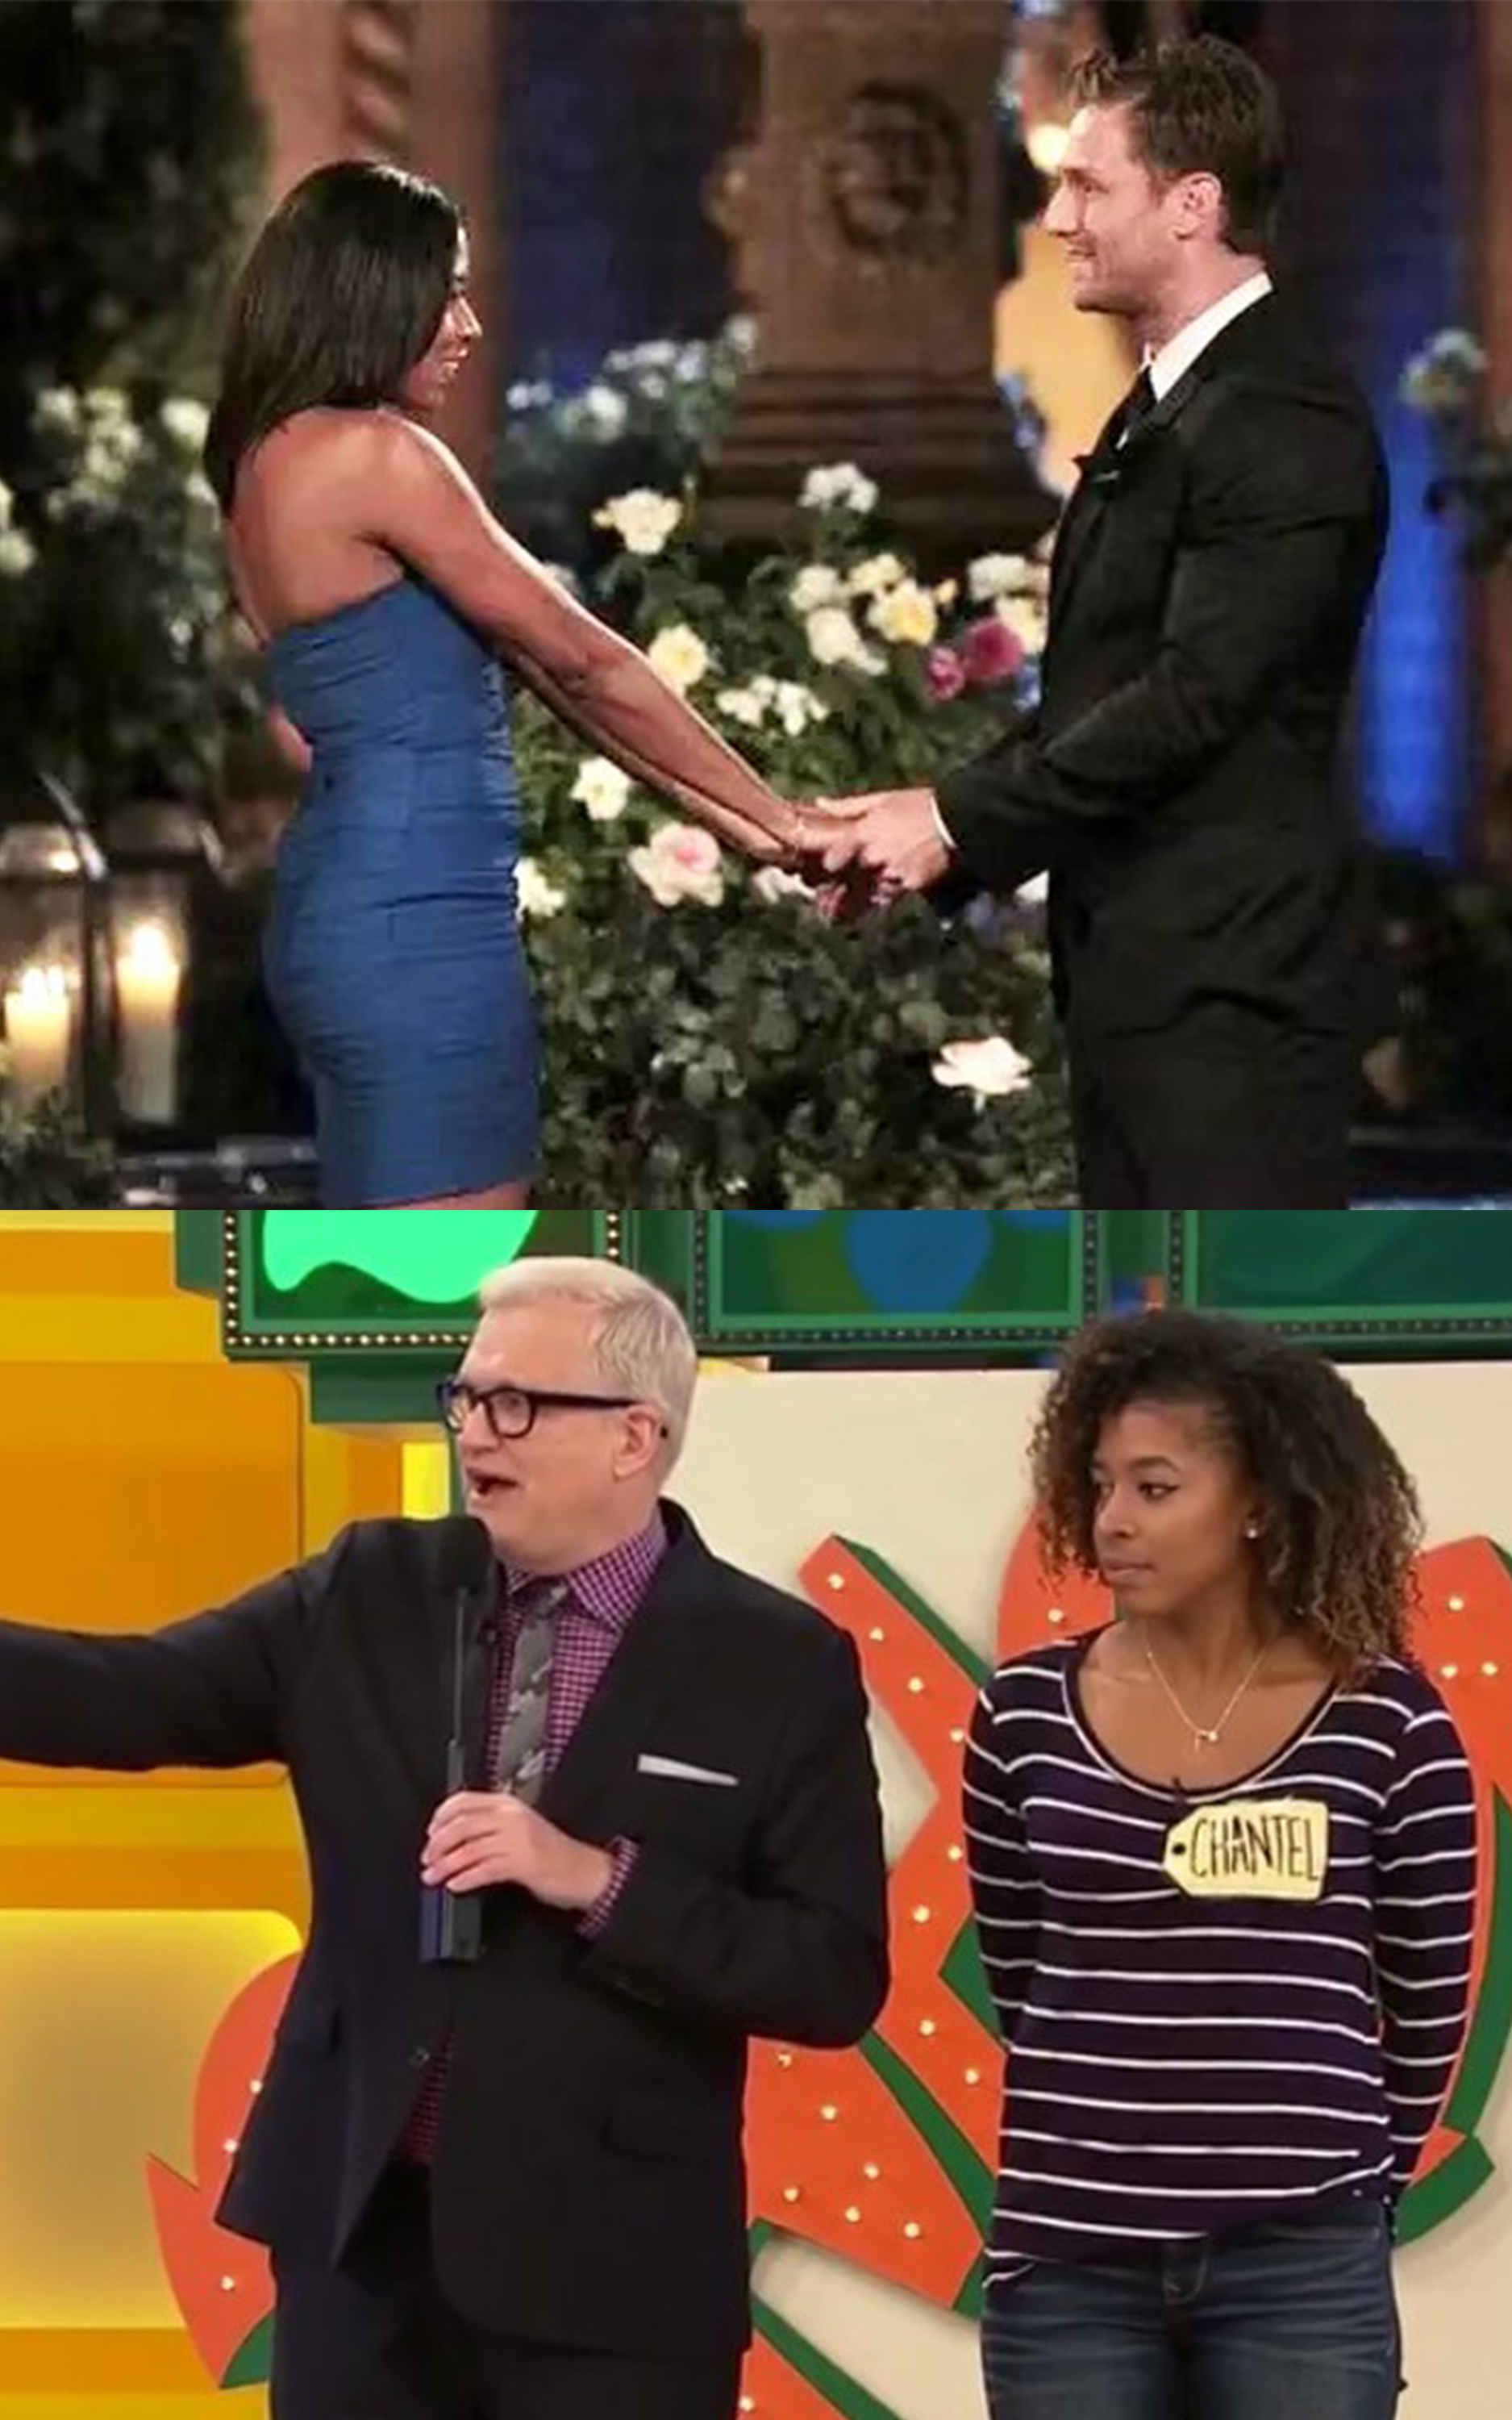 Two stacked photos of Chantel Forrest. The first holding hands with a man on The Bachelor and the second standing next to the host of The Price is Right.